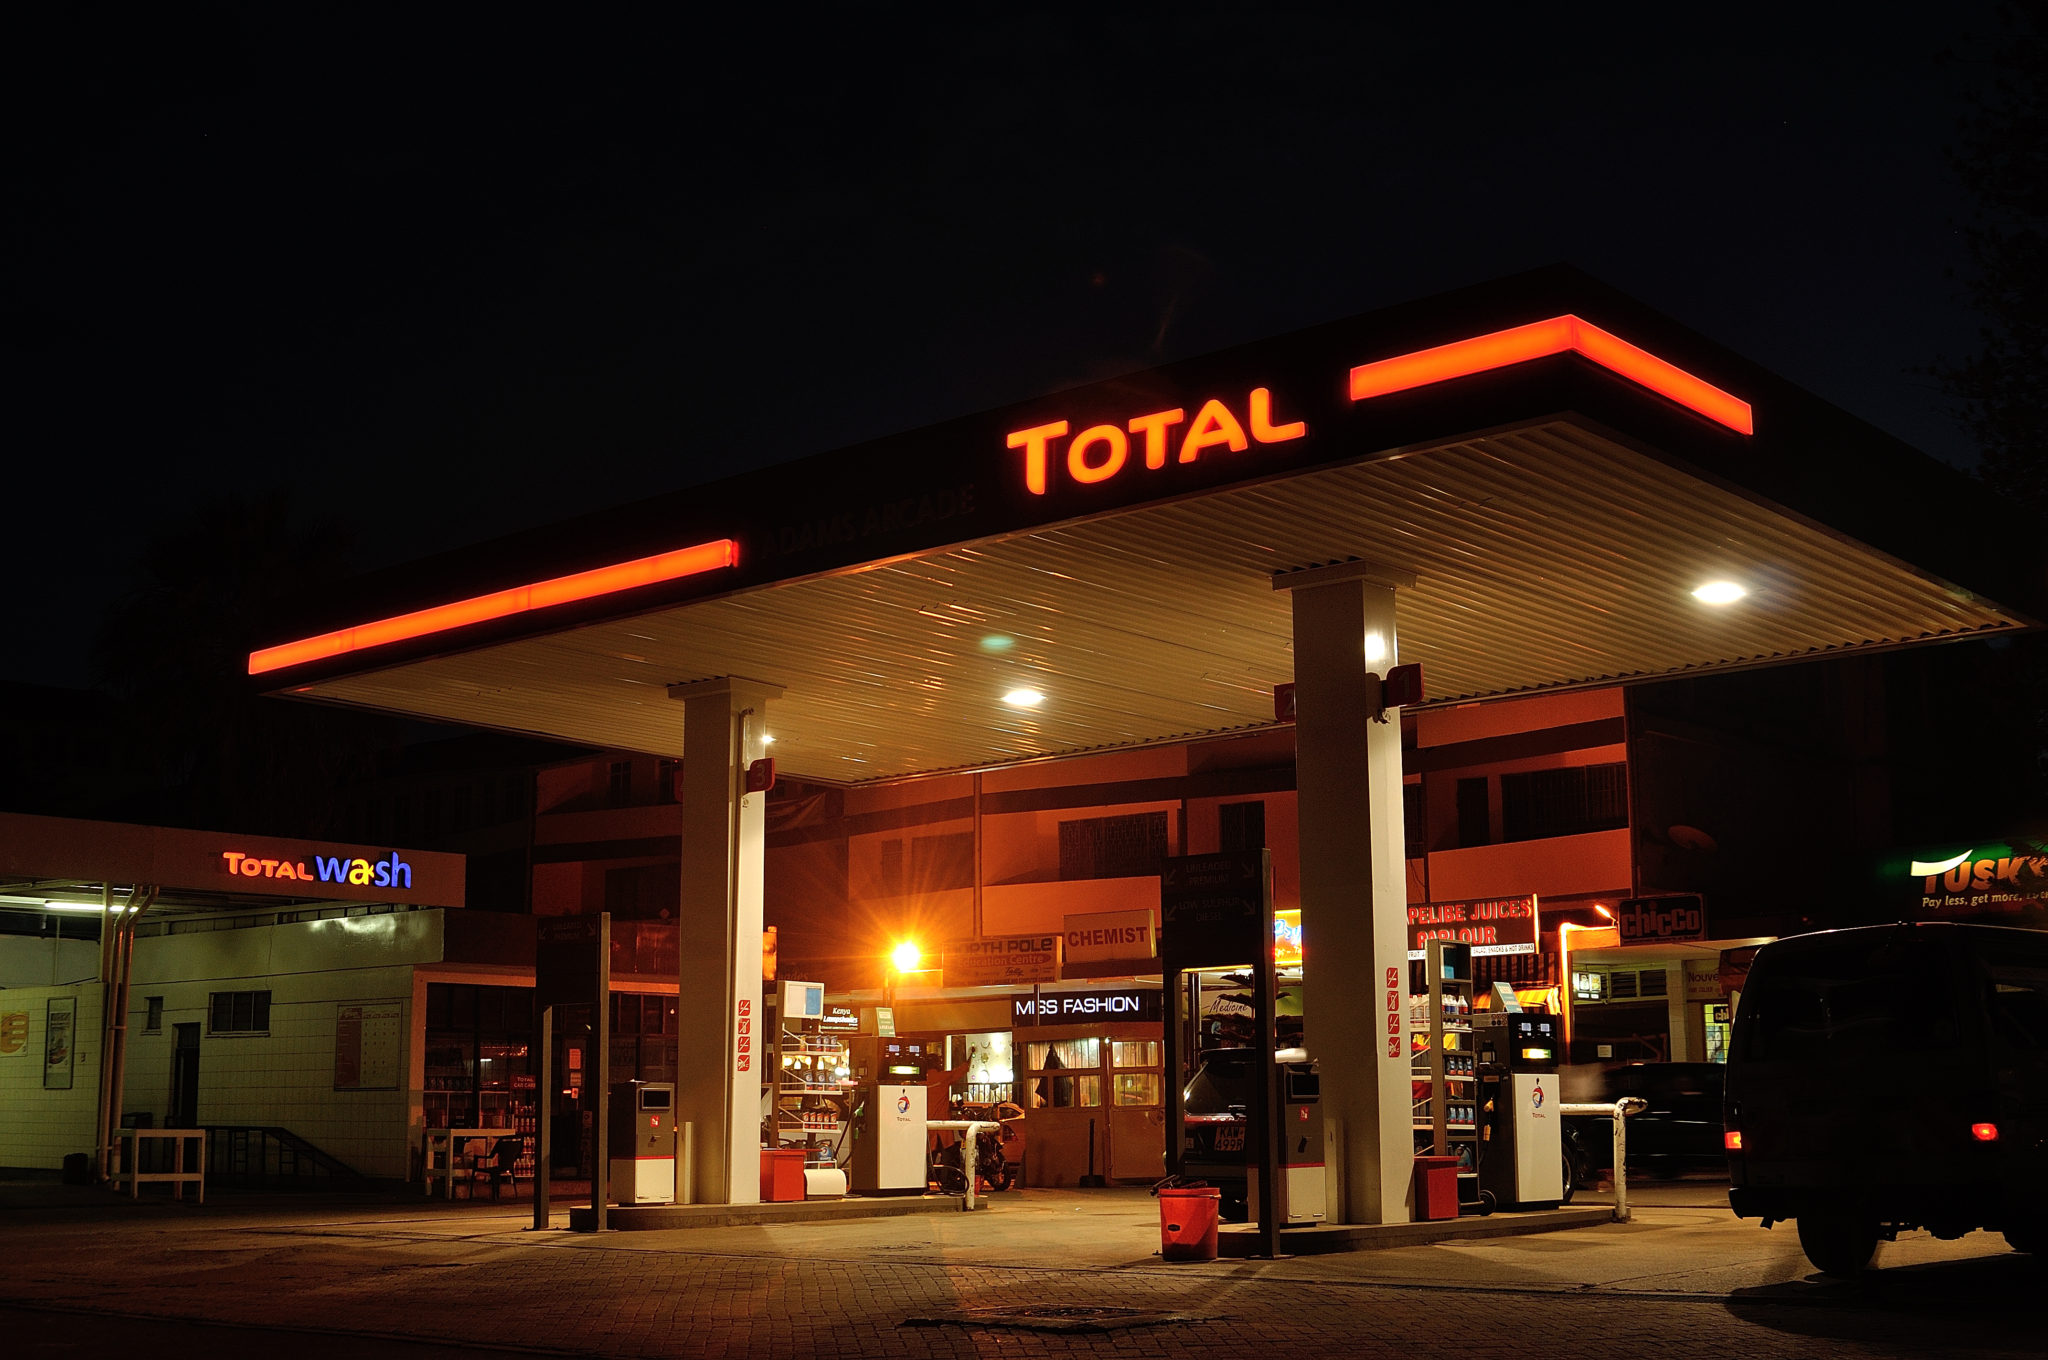 How Total Kenya exploits, rips off Kenyans for profit